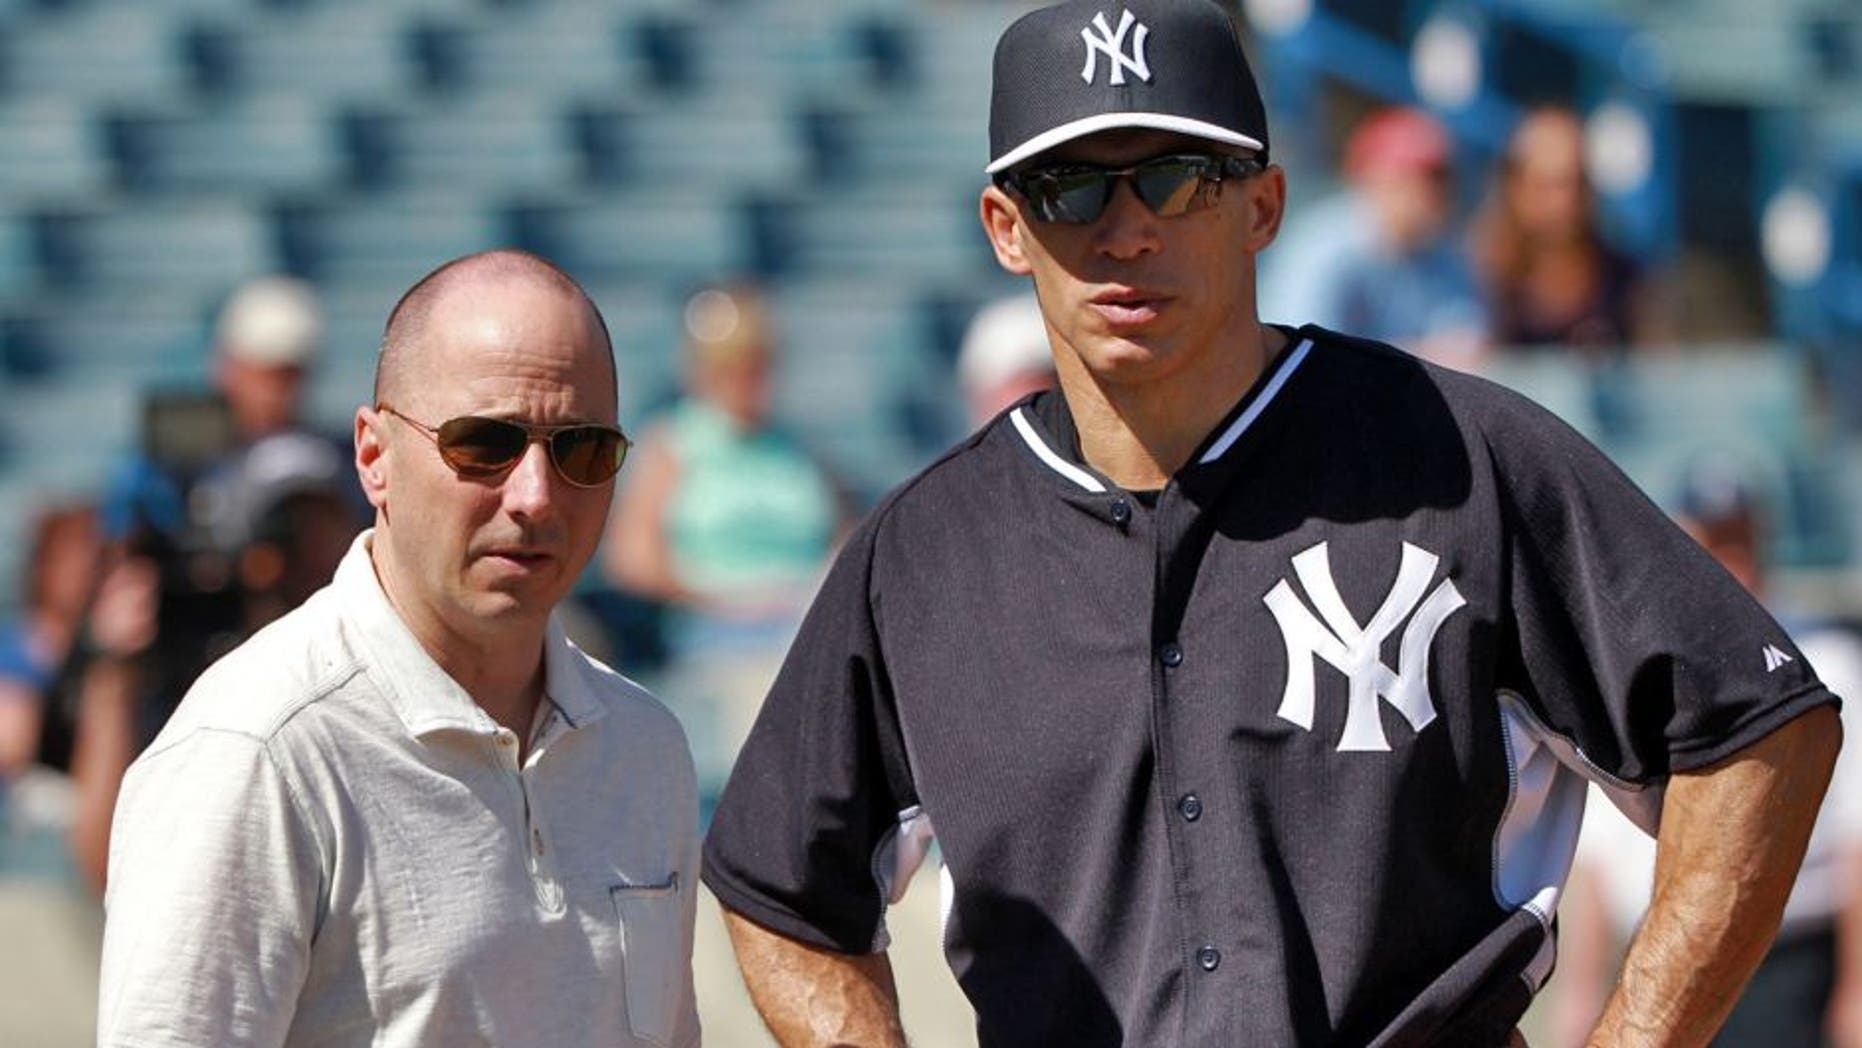 Feb 21, 2015; Tampa, FL, USA; New York Yankees manager Joe Girardi (right) and generial manager Brian Cashman during spring training workouts at George M. Steinbrenner Field. Mandatory Credit: Kim Klement-USA TODAY Sports